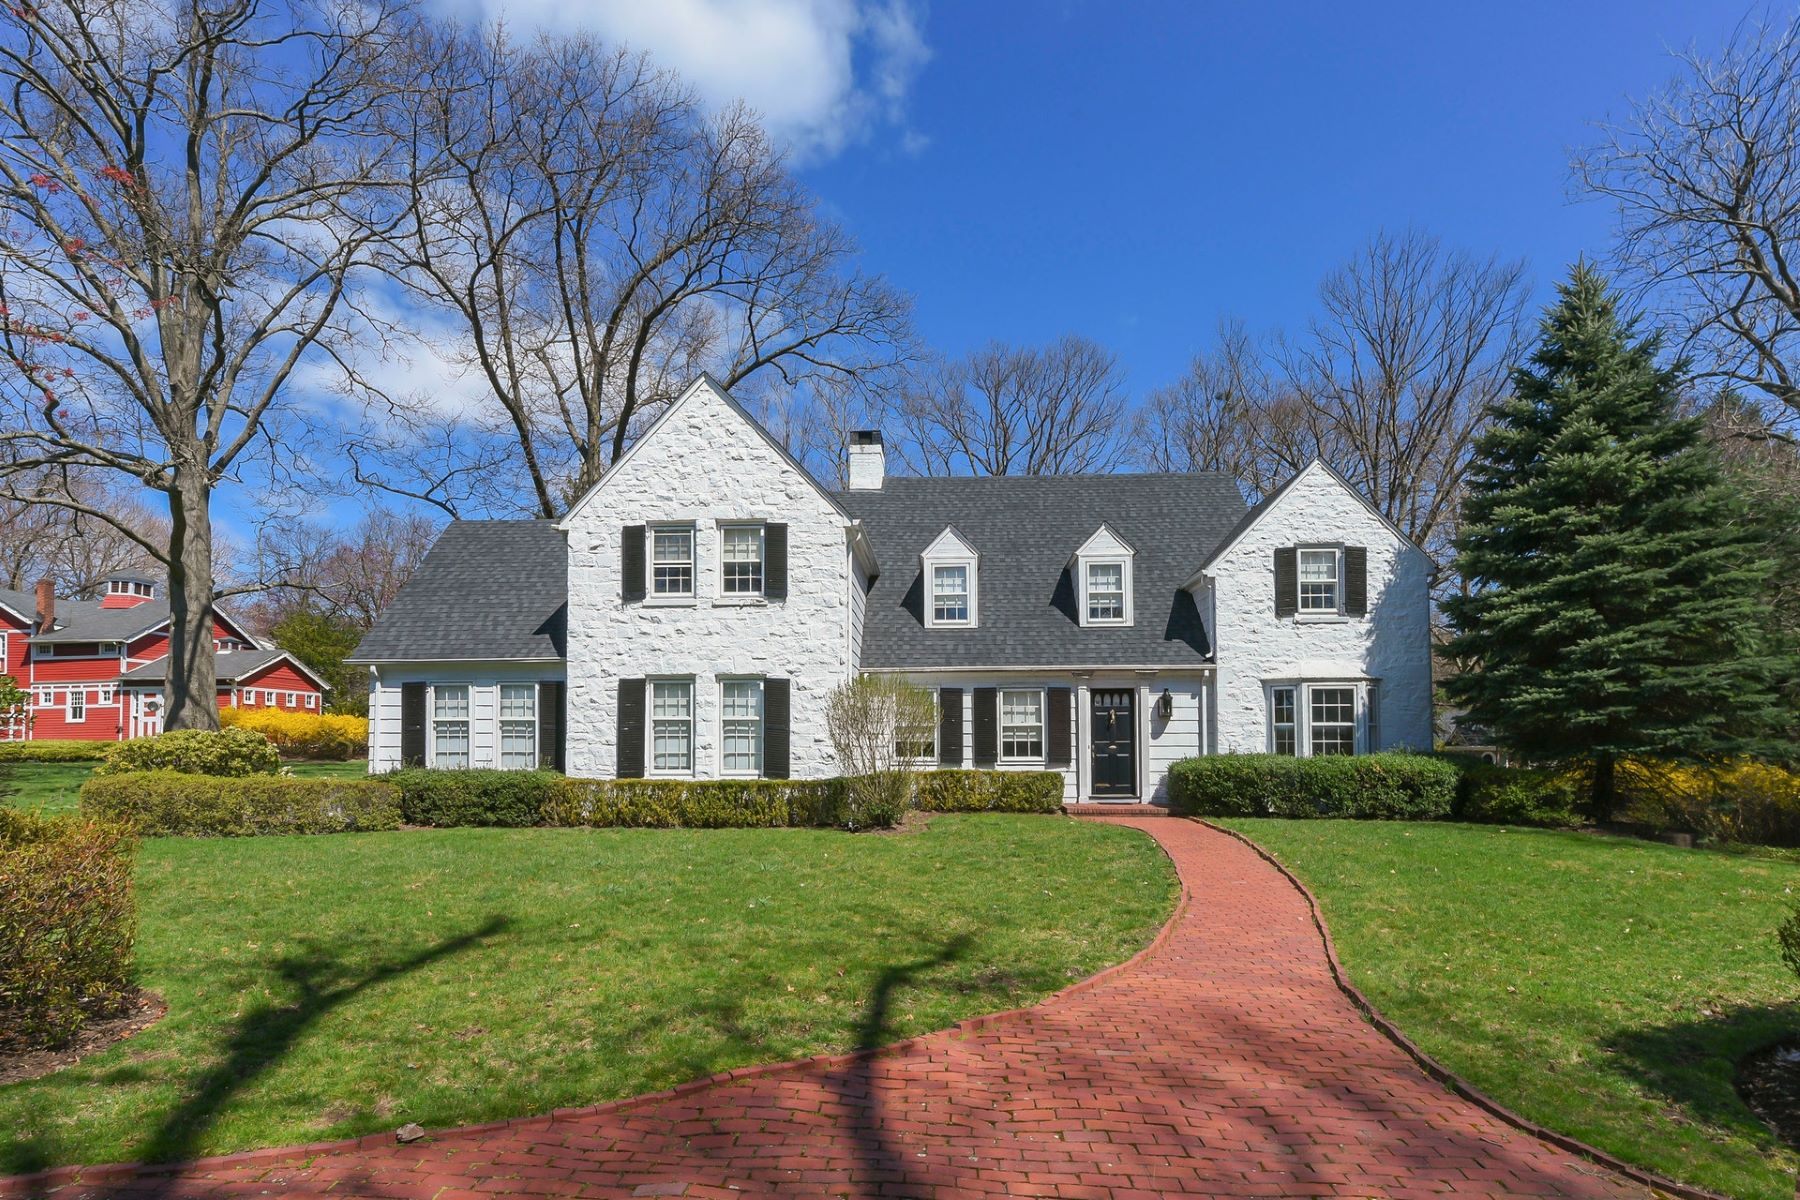 Single Family Homes for Sale at Bucolic Retreat 44 Lydecker St Englewood, New Jersey 07631 United States